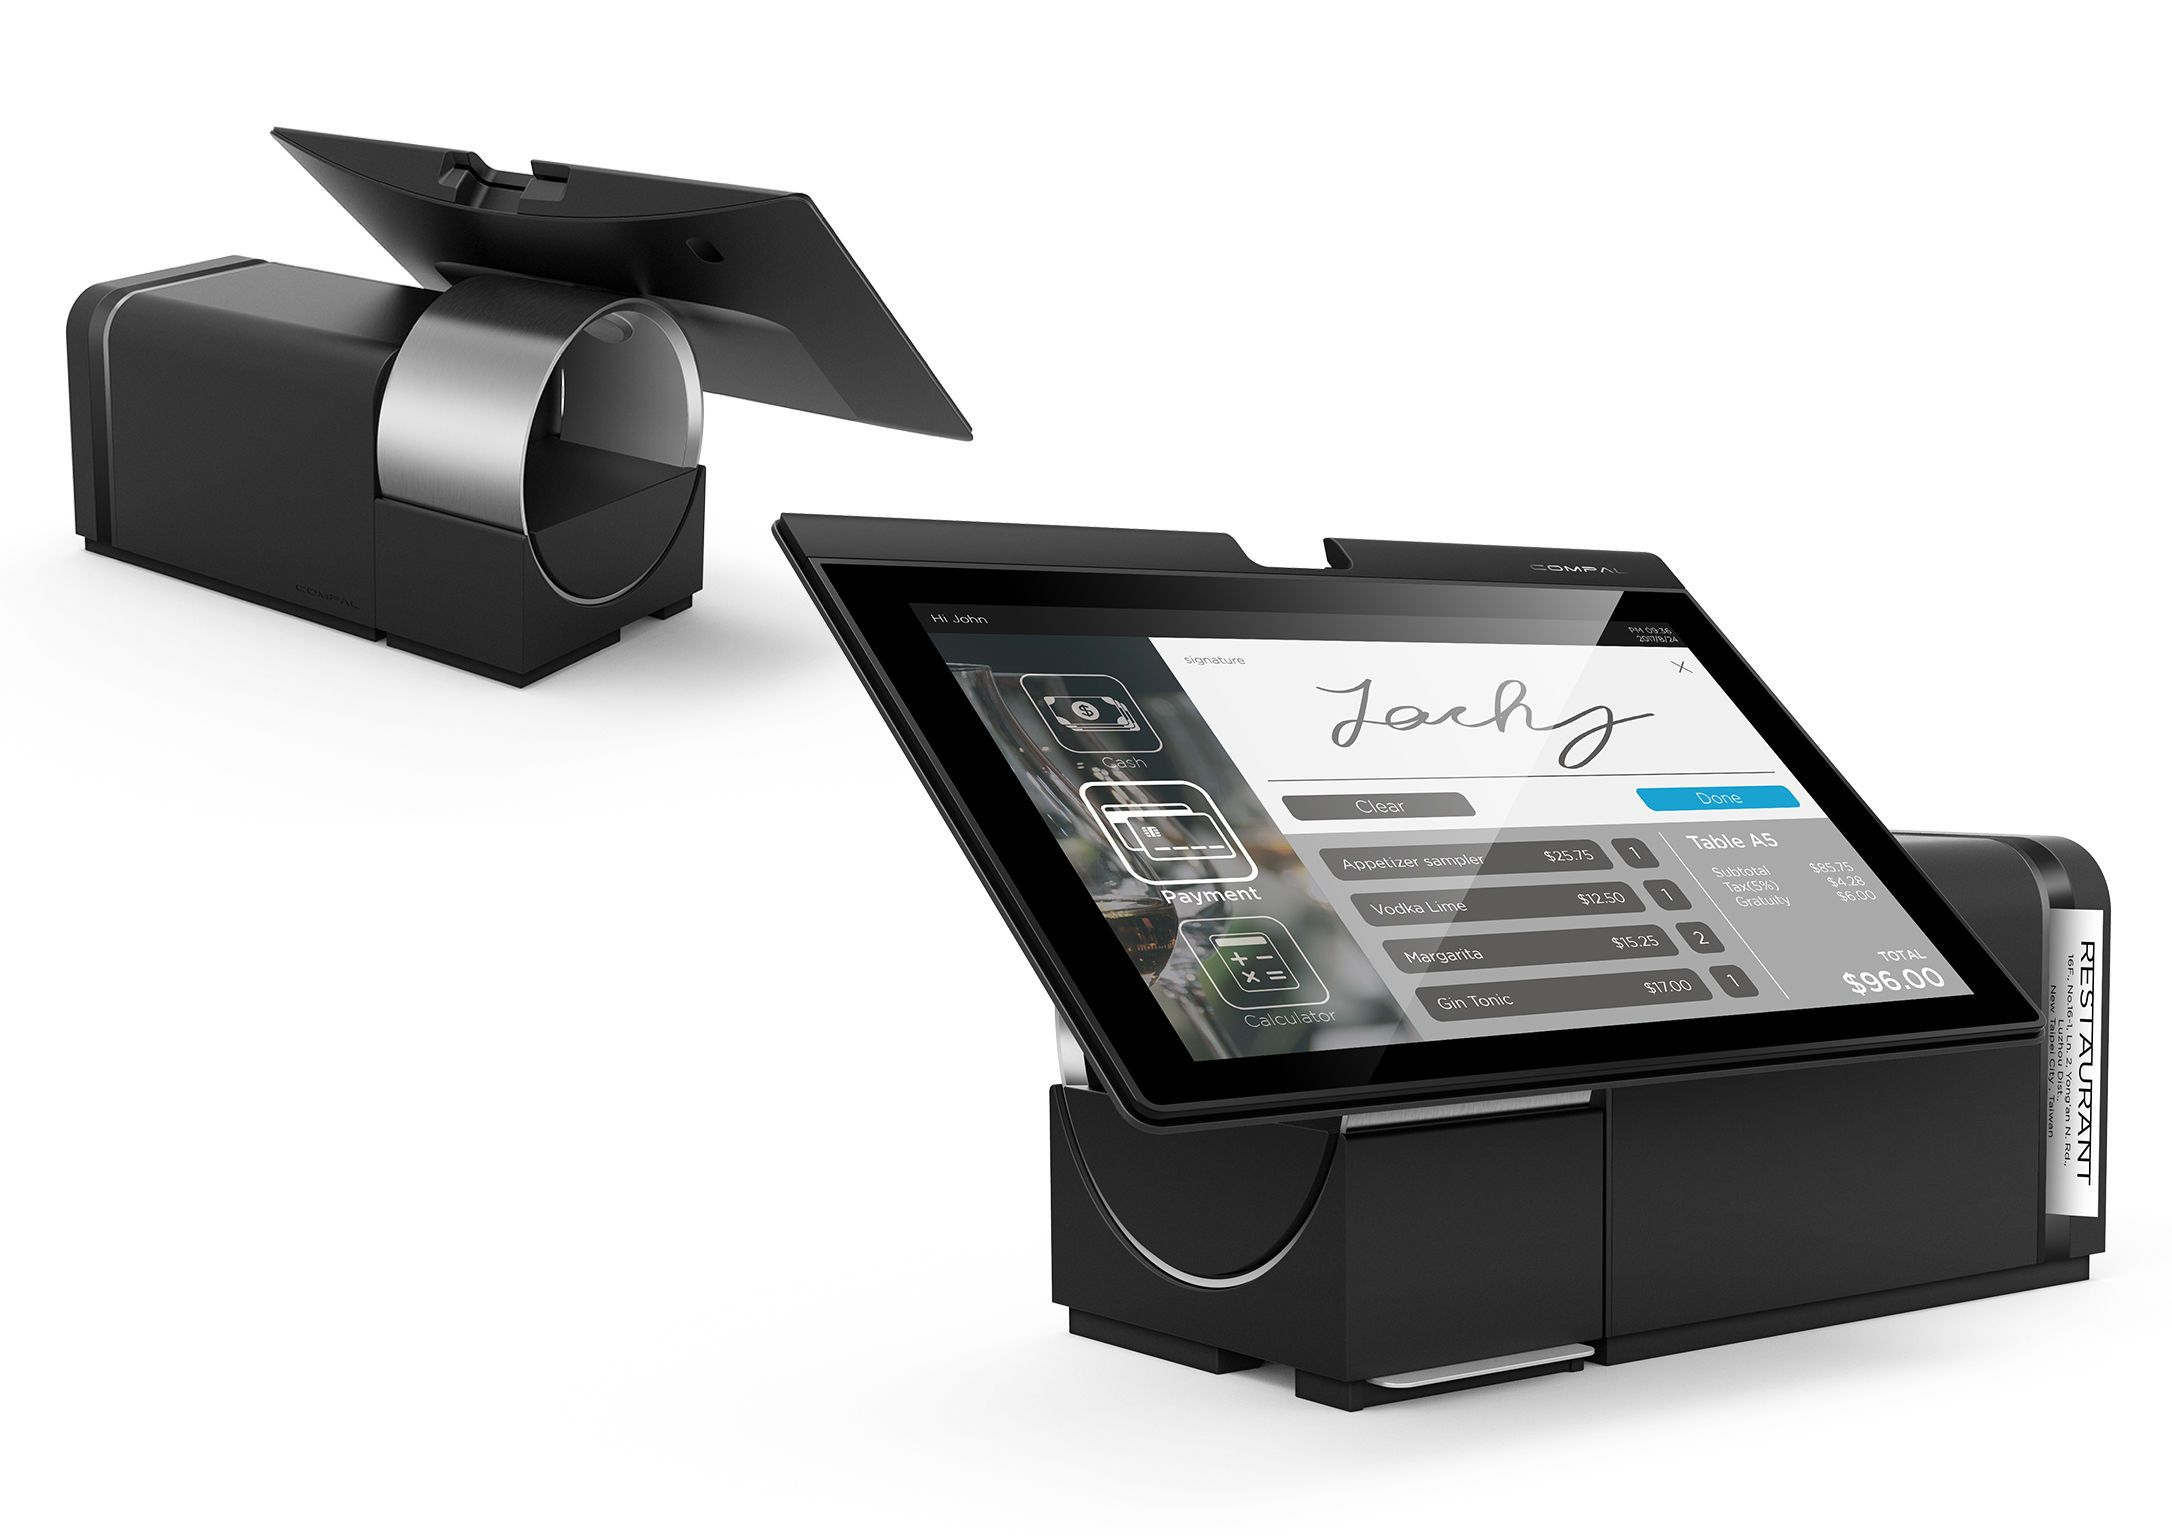 Https Ifworlddesignguide Com Entry 202759 Verifone Carbon Pages Page Entry 229284 Upos Carbon Handheld Devices Design